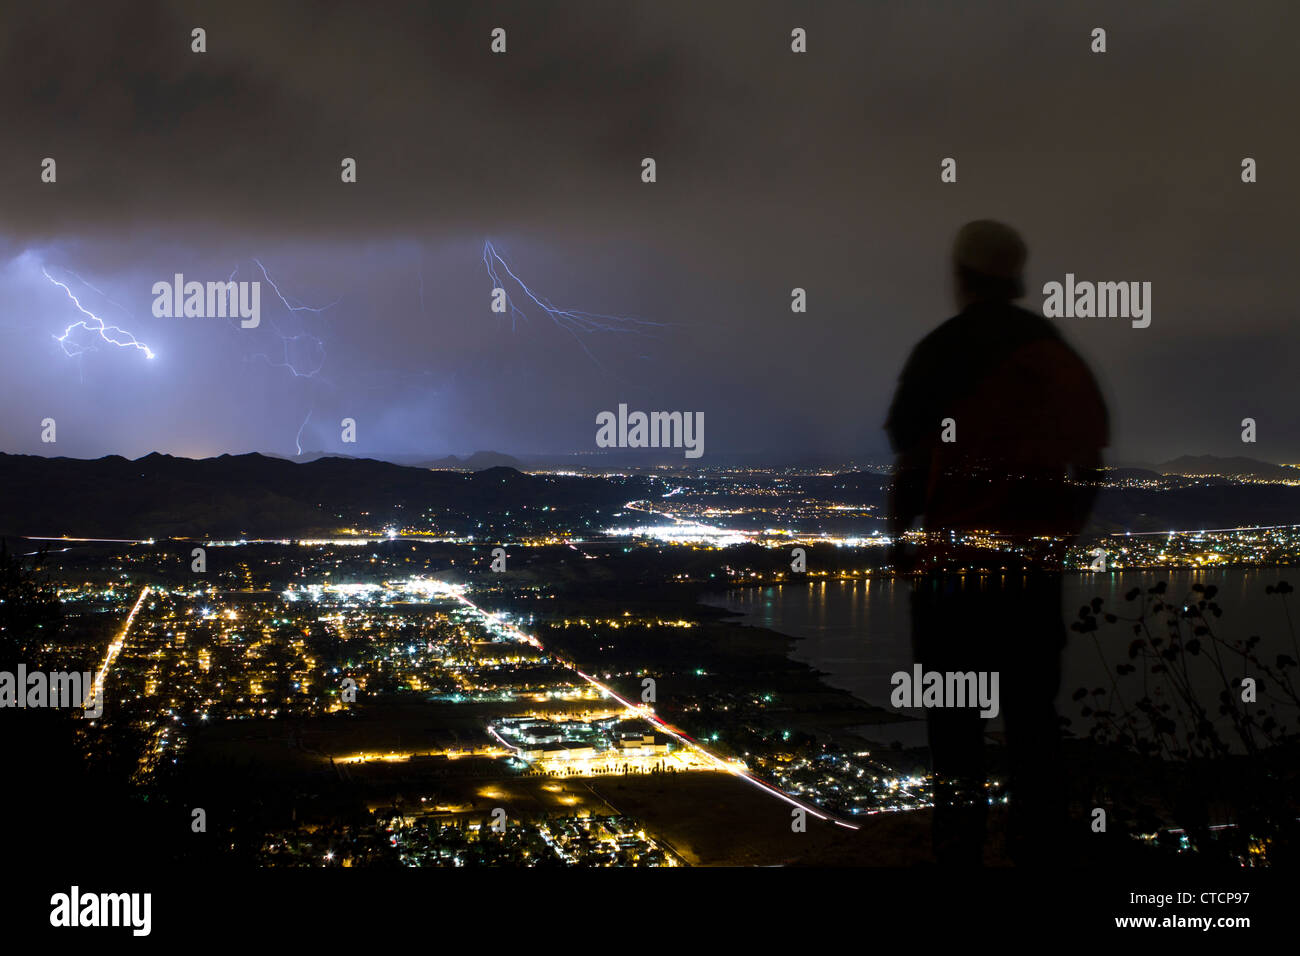 Silhouette of a young man watching a lighting storm over lake elsinore Stock Photo